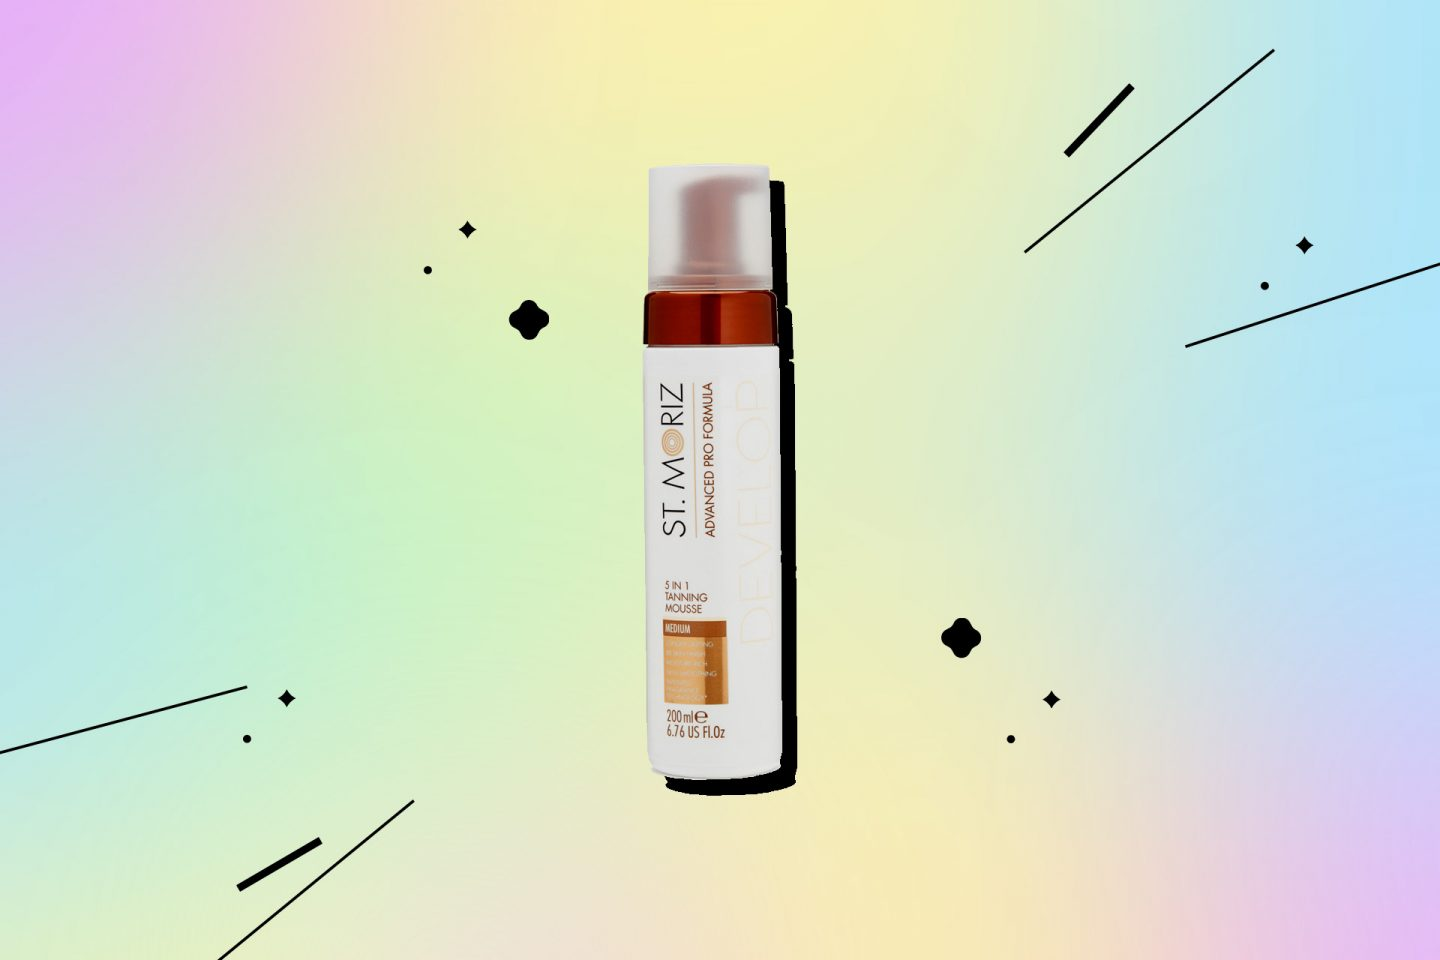 Мусс для лица и тела Advanced Pro Formula от St. Moriz